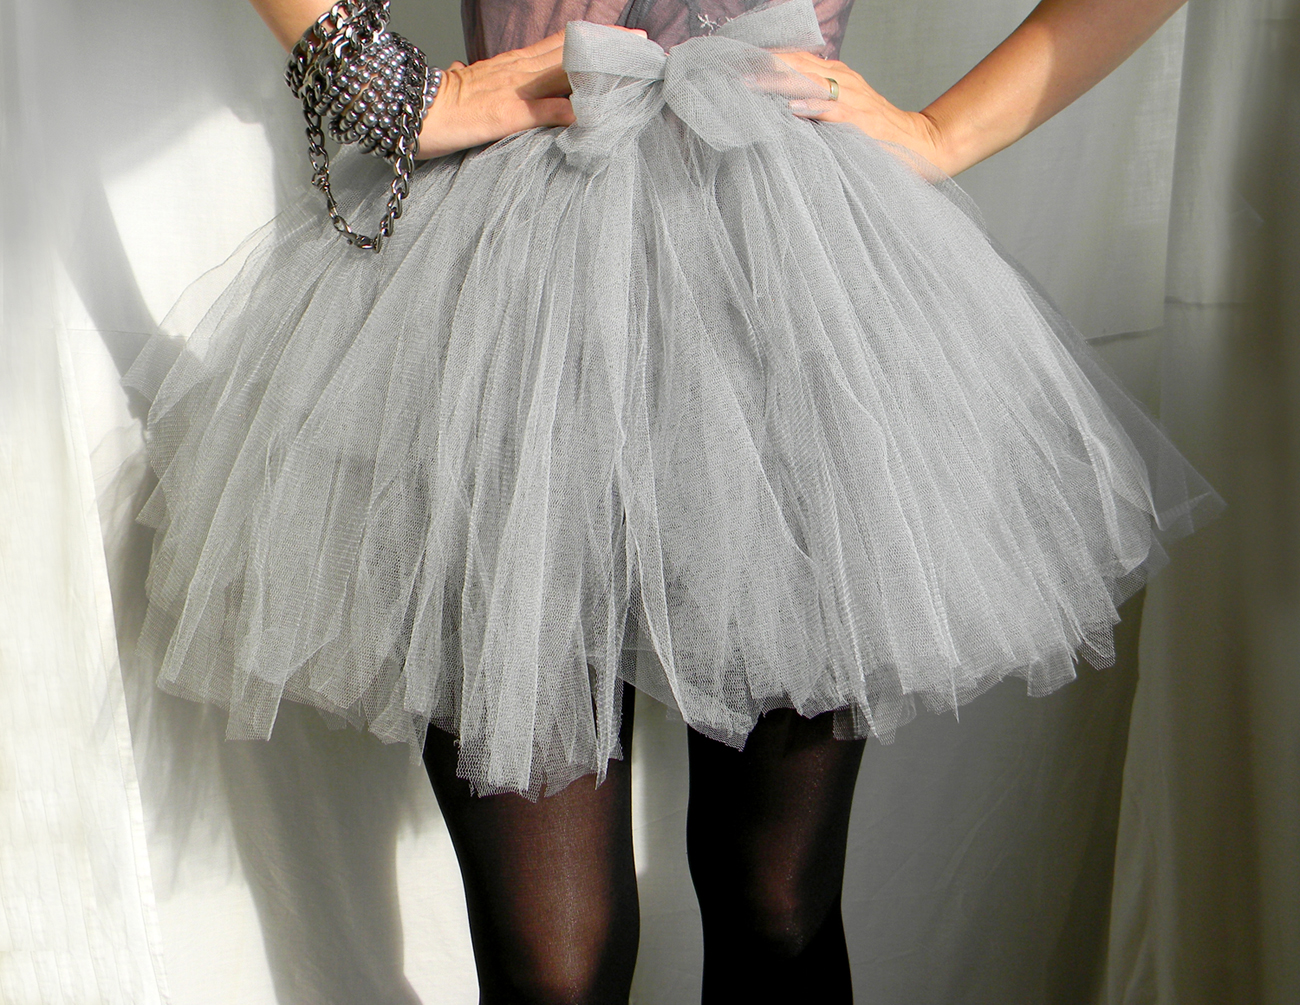 Fashion Pixie Tutu Skirt Ballet